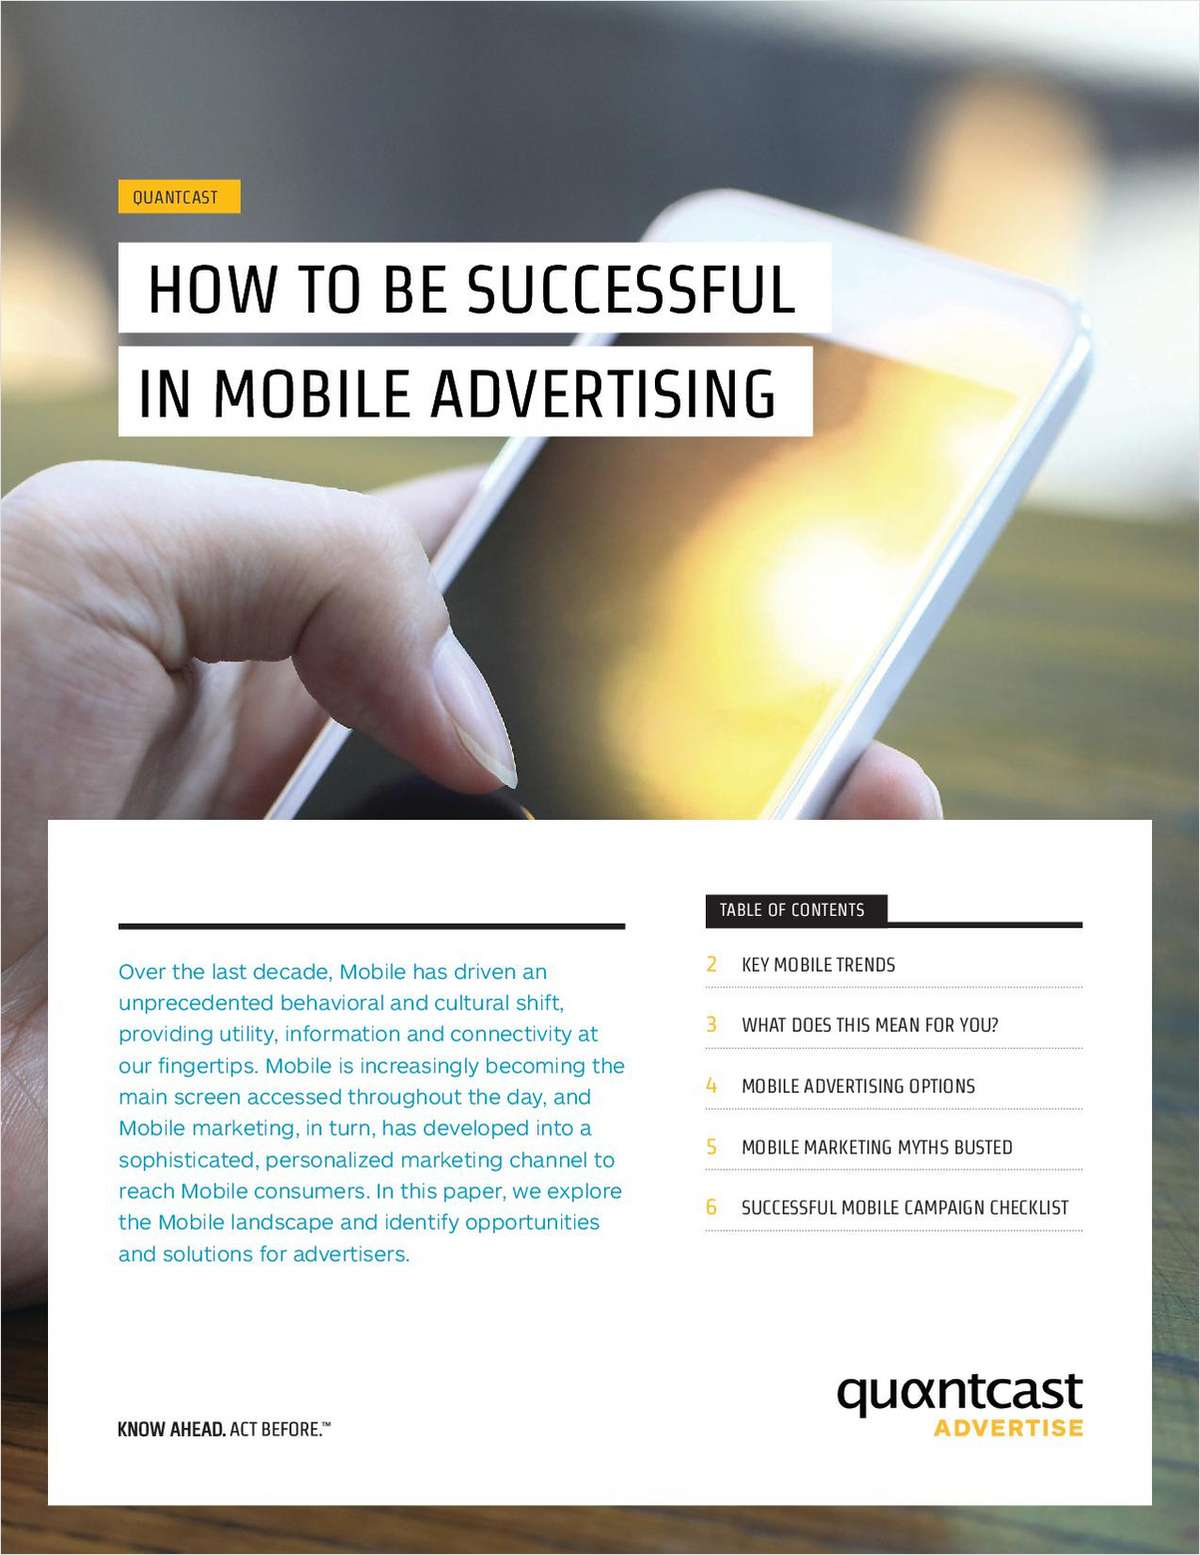 How To Be Successful In Mobile Advertising